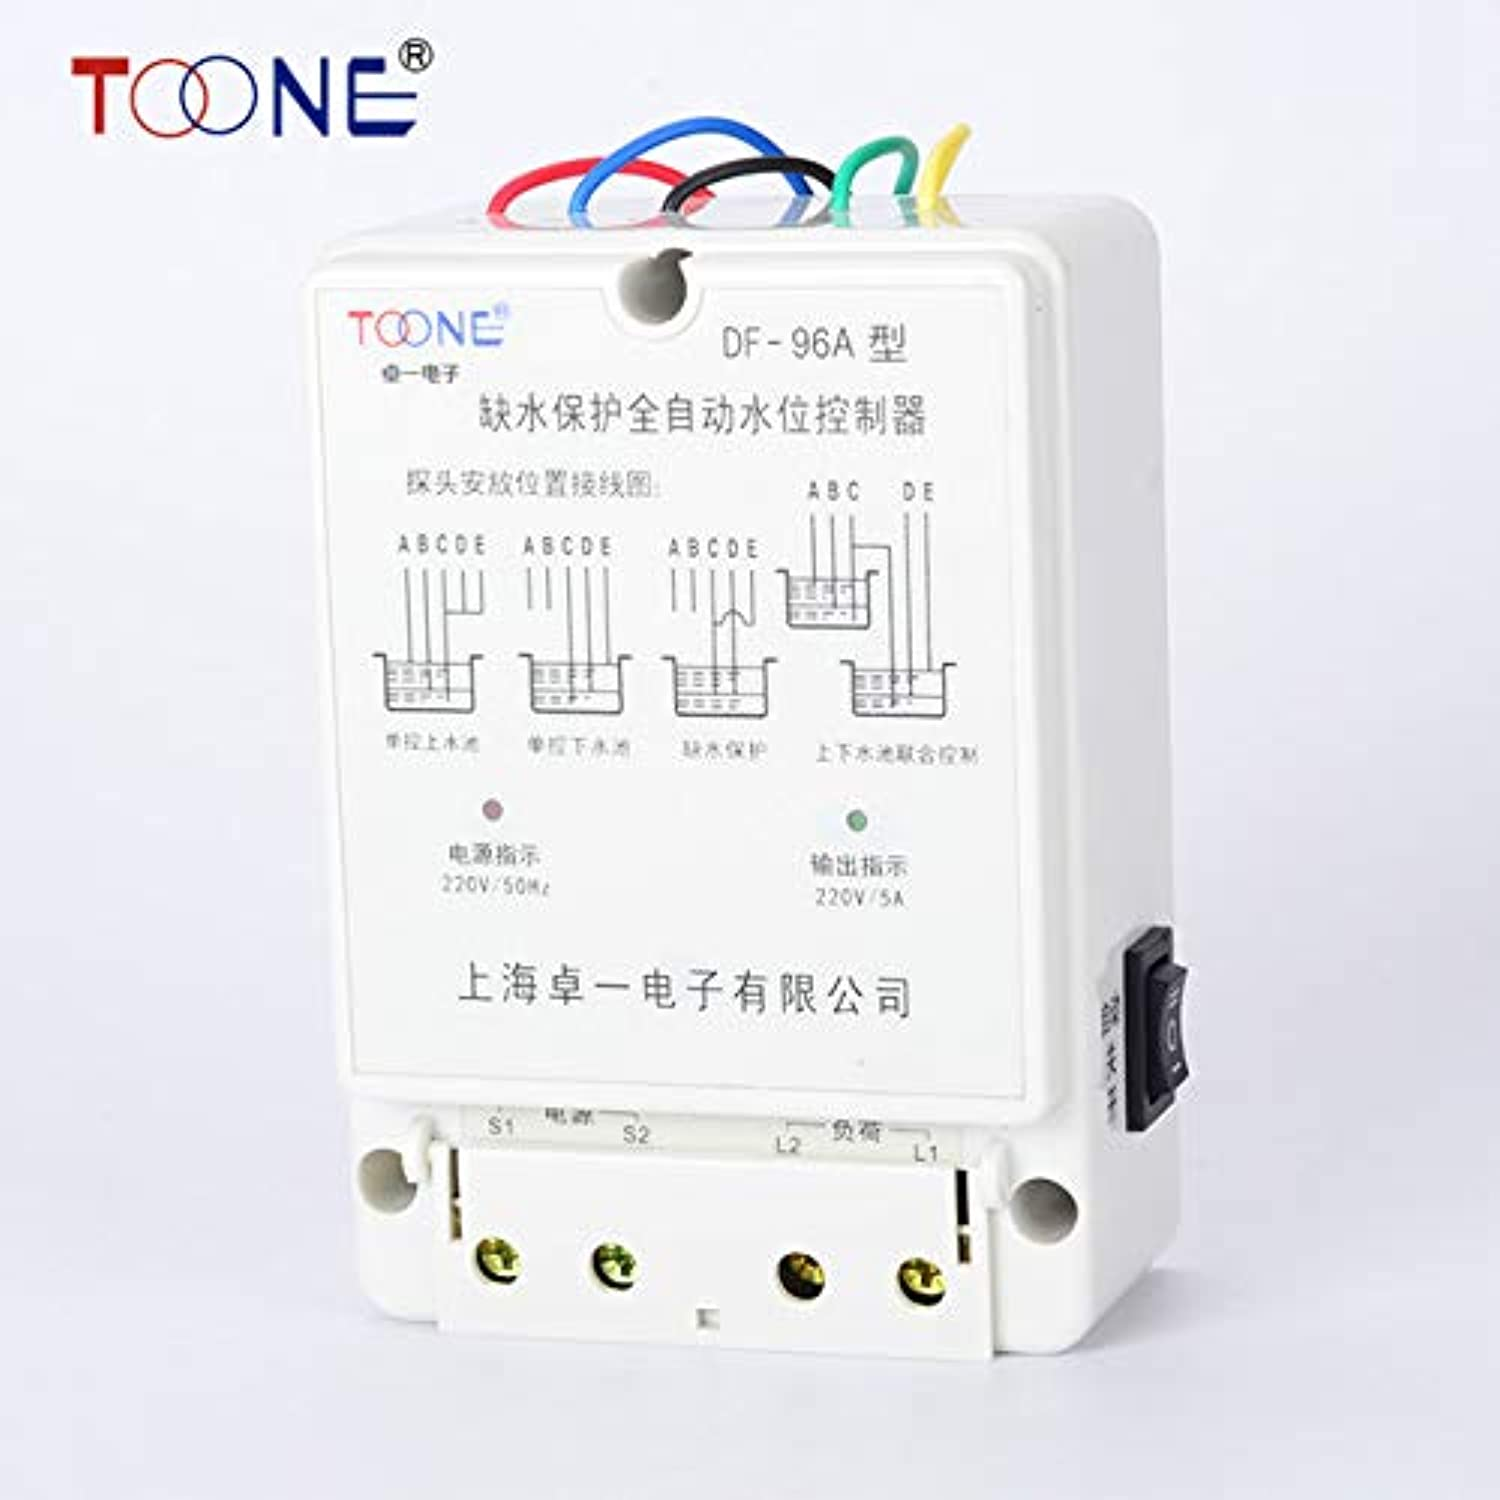 5A Float Switch Type Auto Water Level Controller with 3 DF